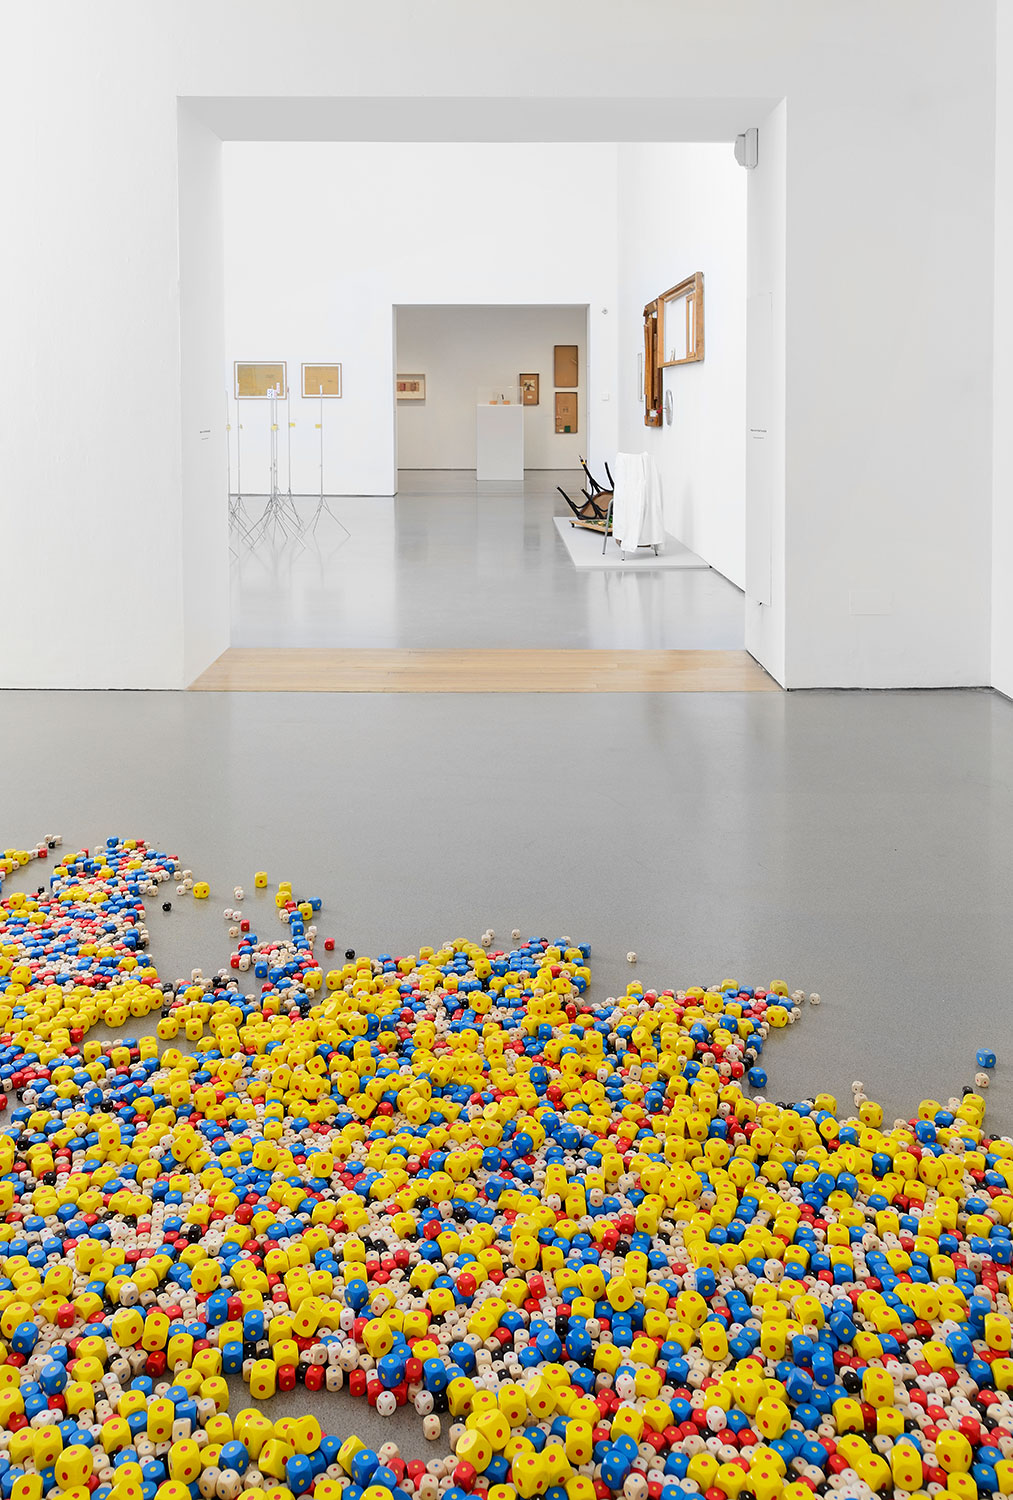 Installation view of Gallery 3, showing 'Eins. Un. One.' (1984, 16,000 painted wooden cubes) 3